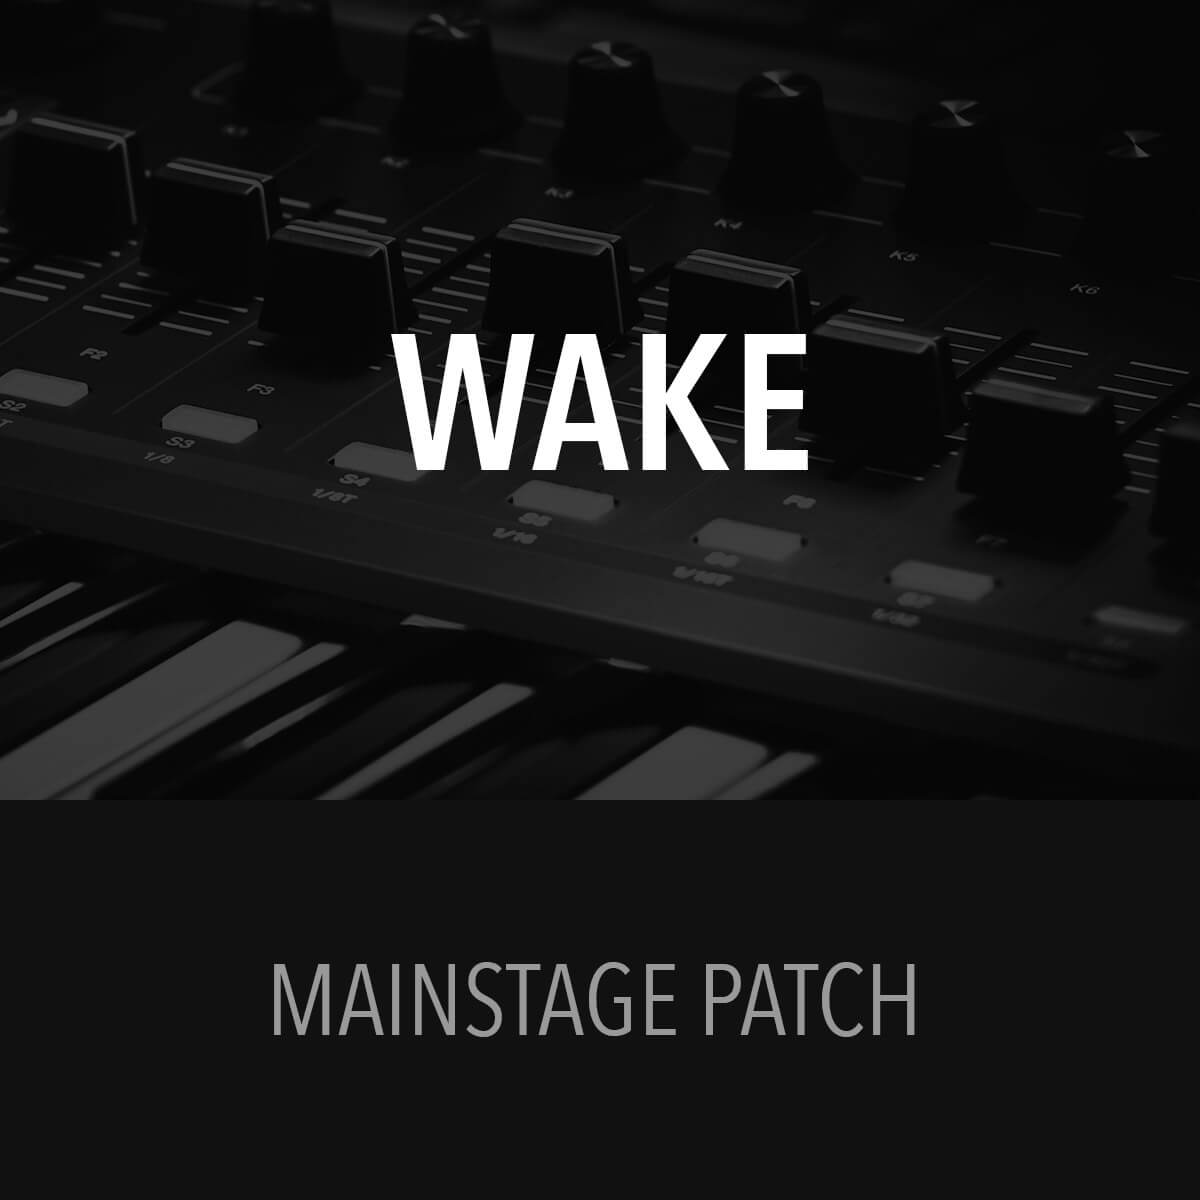 MainStage Patch - Wake - Hillsong Young & Free